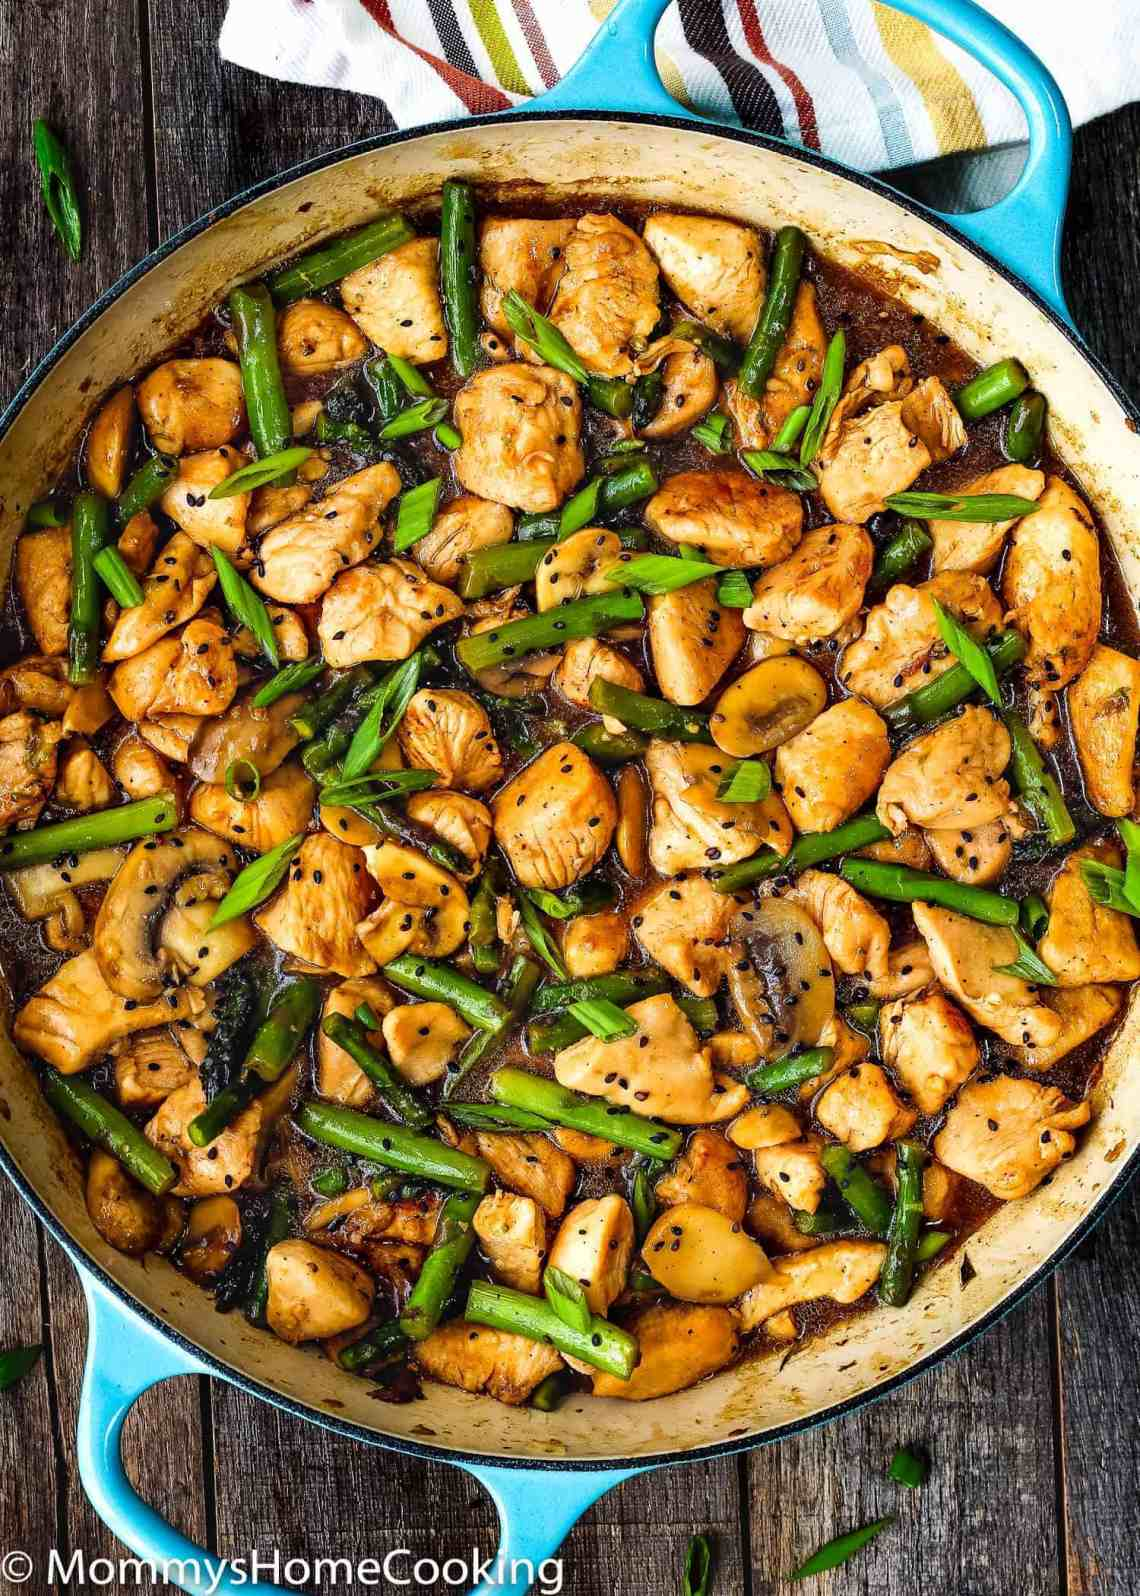 Easy Healthy Chicken and Asparagus Skillet - Mommy's Home ...